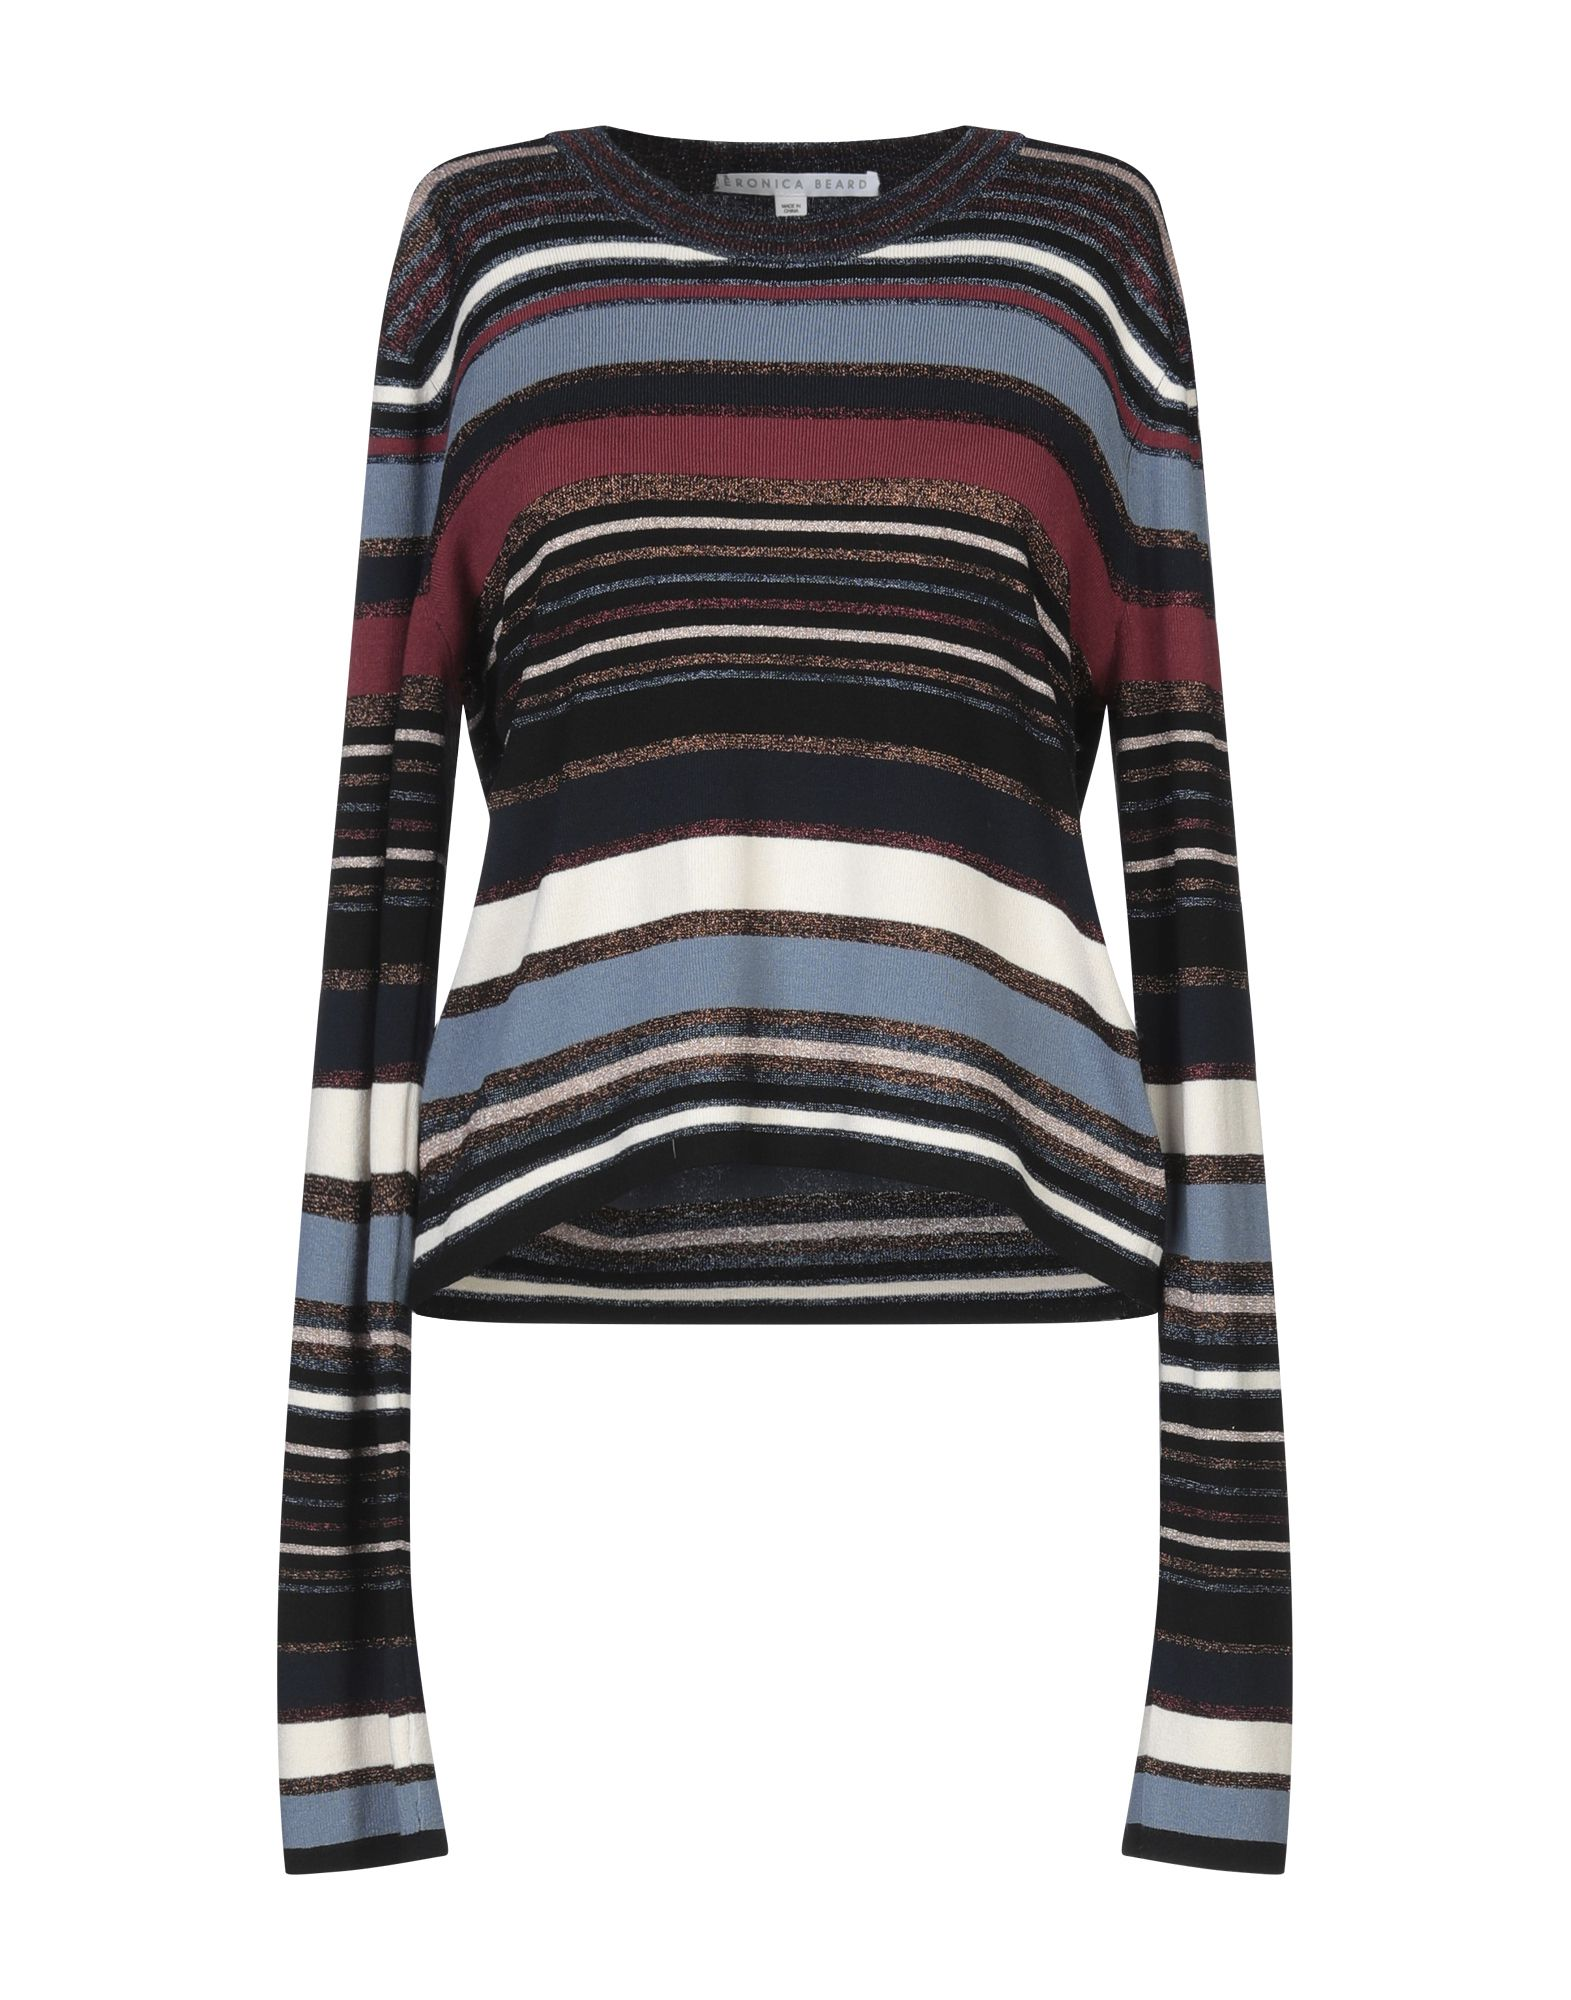 VERONICA BEARD Sweaters. knitted, lamé, no appliqués, stripes, round collar, lightweight sweater, long sleeves, no pockets. 65% Viscose, 15% Nylon, 13% Metallic fiber, 7% Polyester